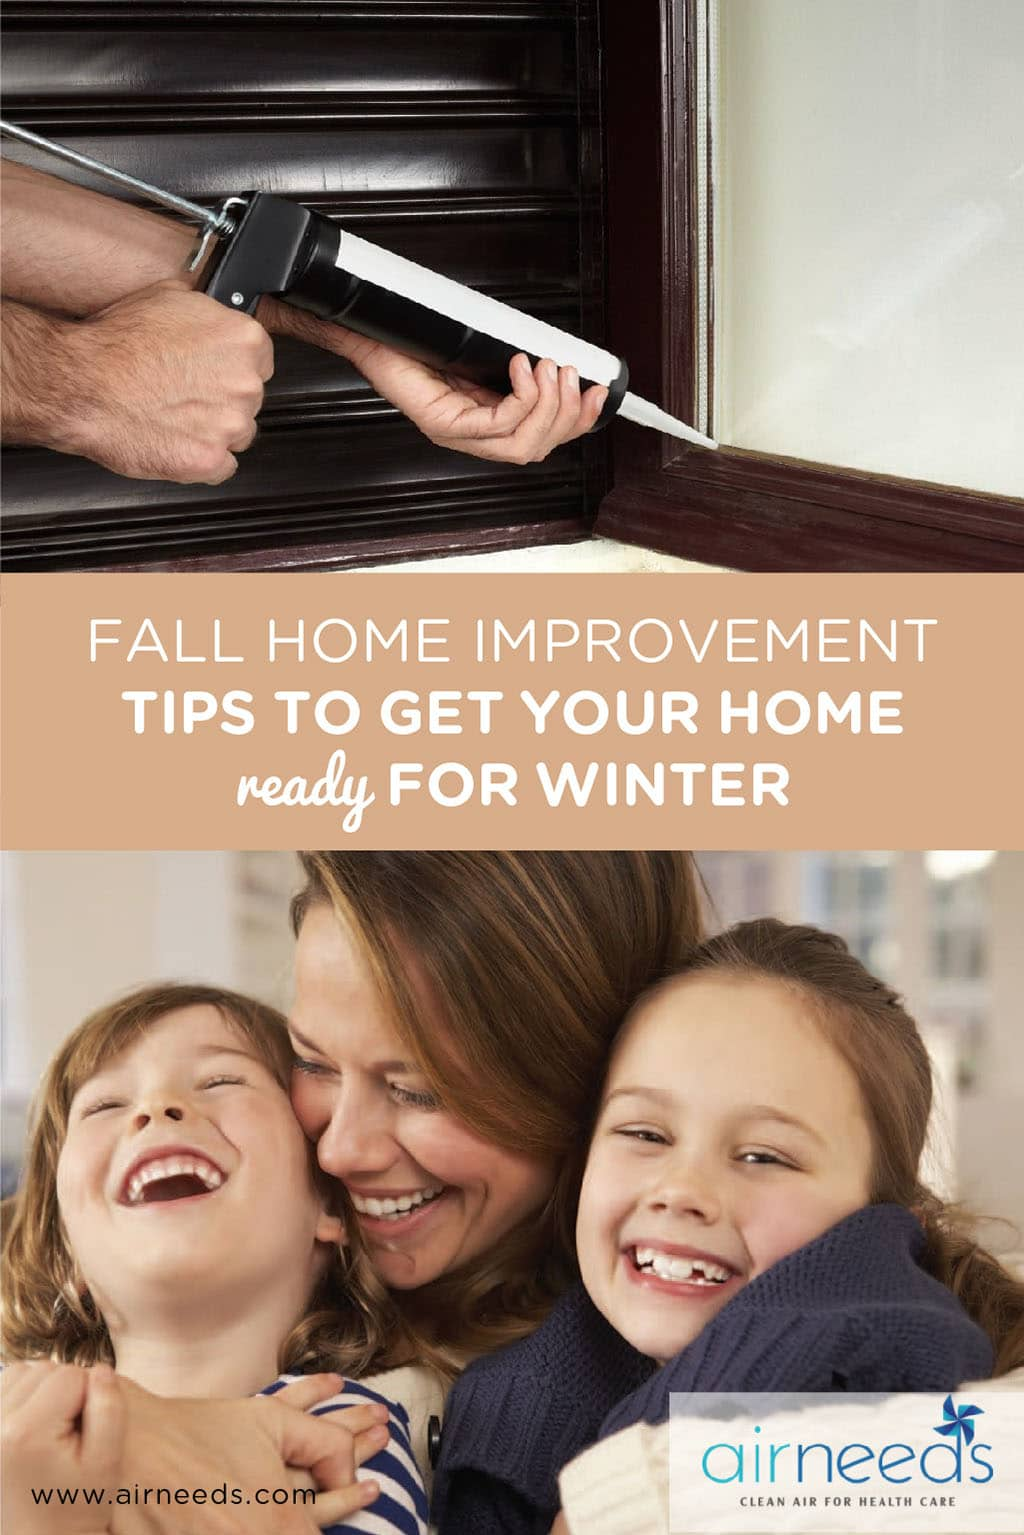 FALL HOME IMPROVEMENT TIPS TO GET YOUR HOME READY FOR WINTER